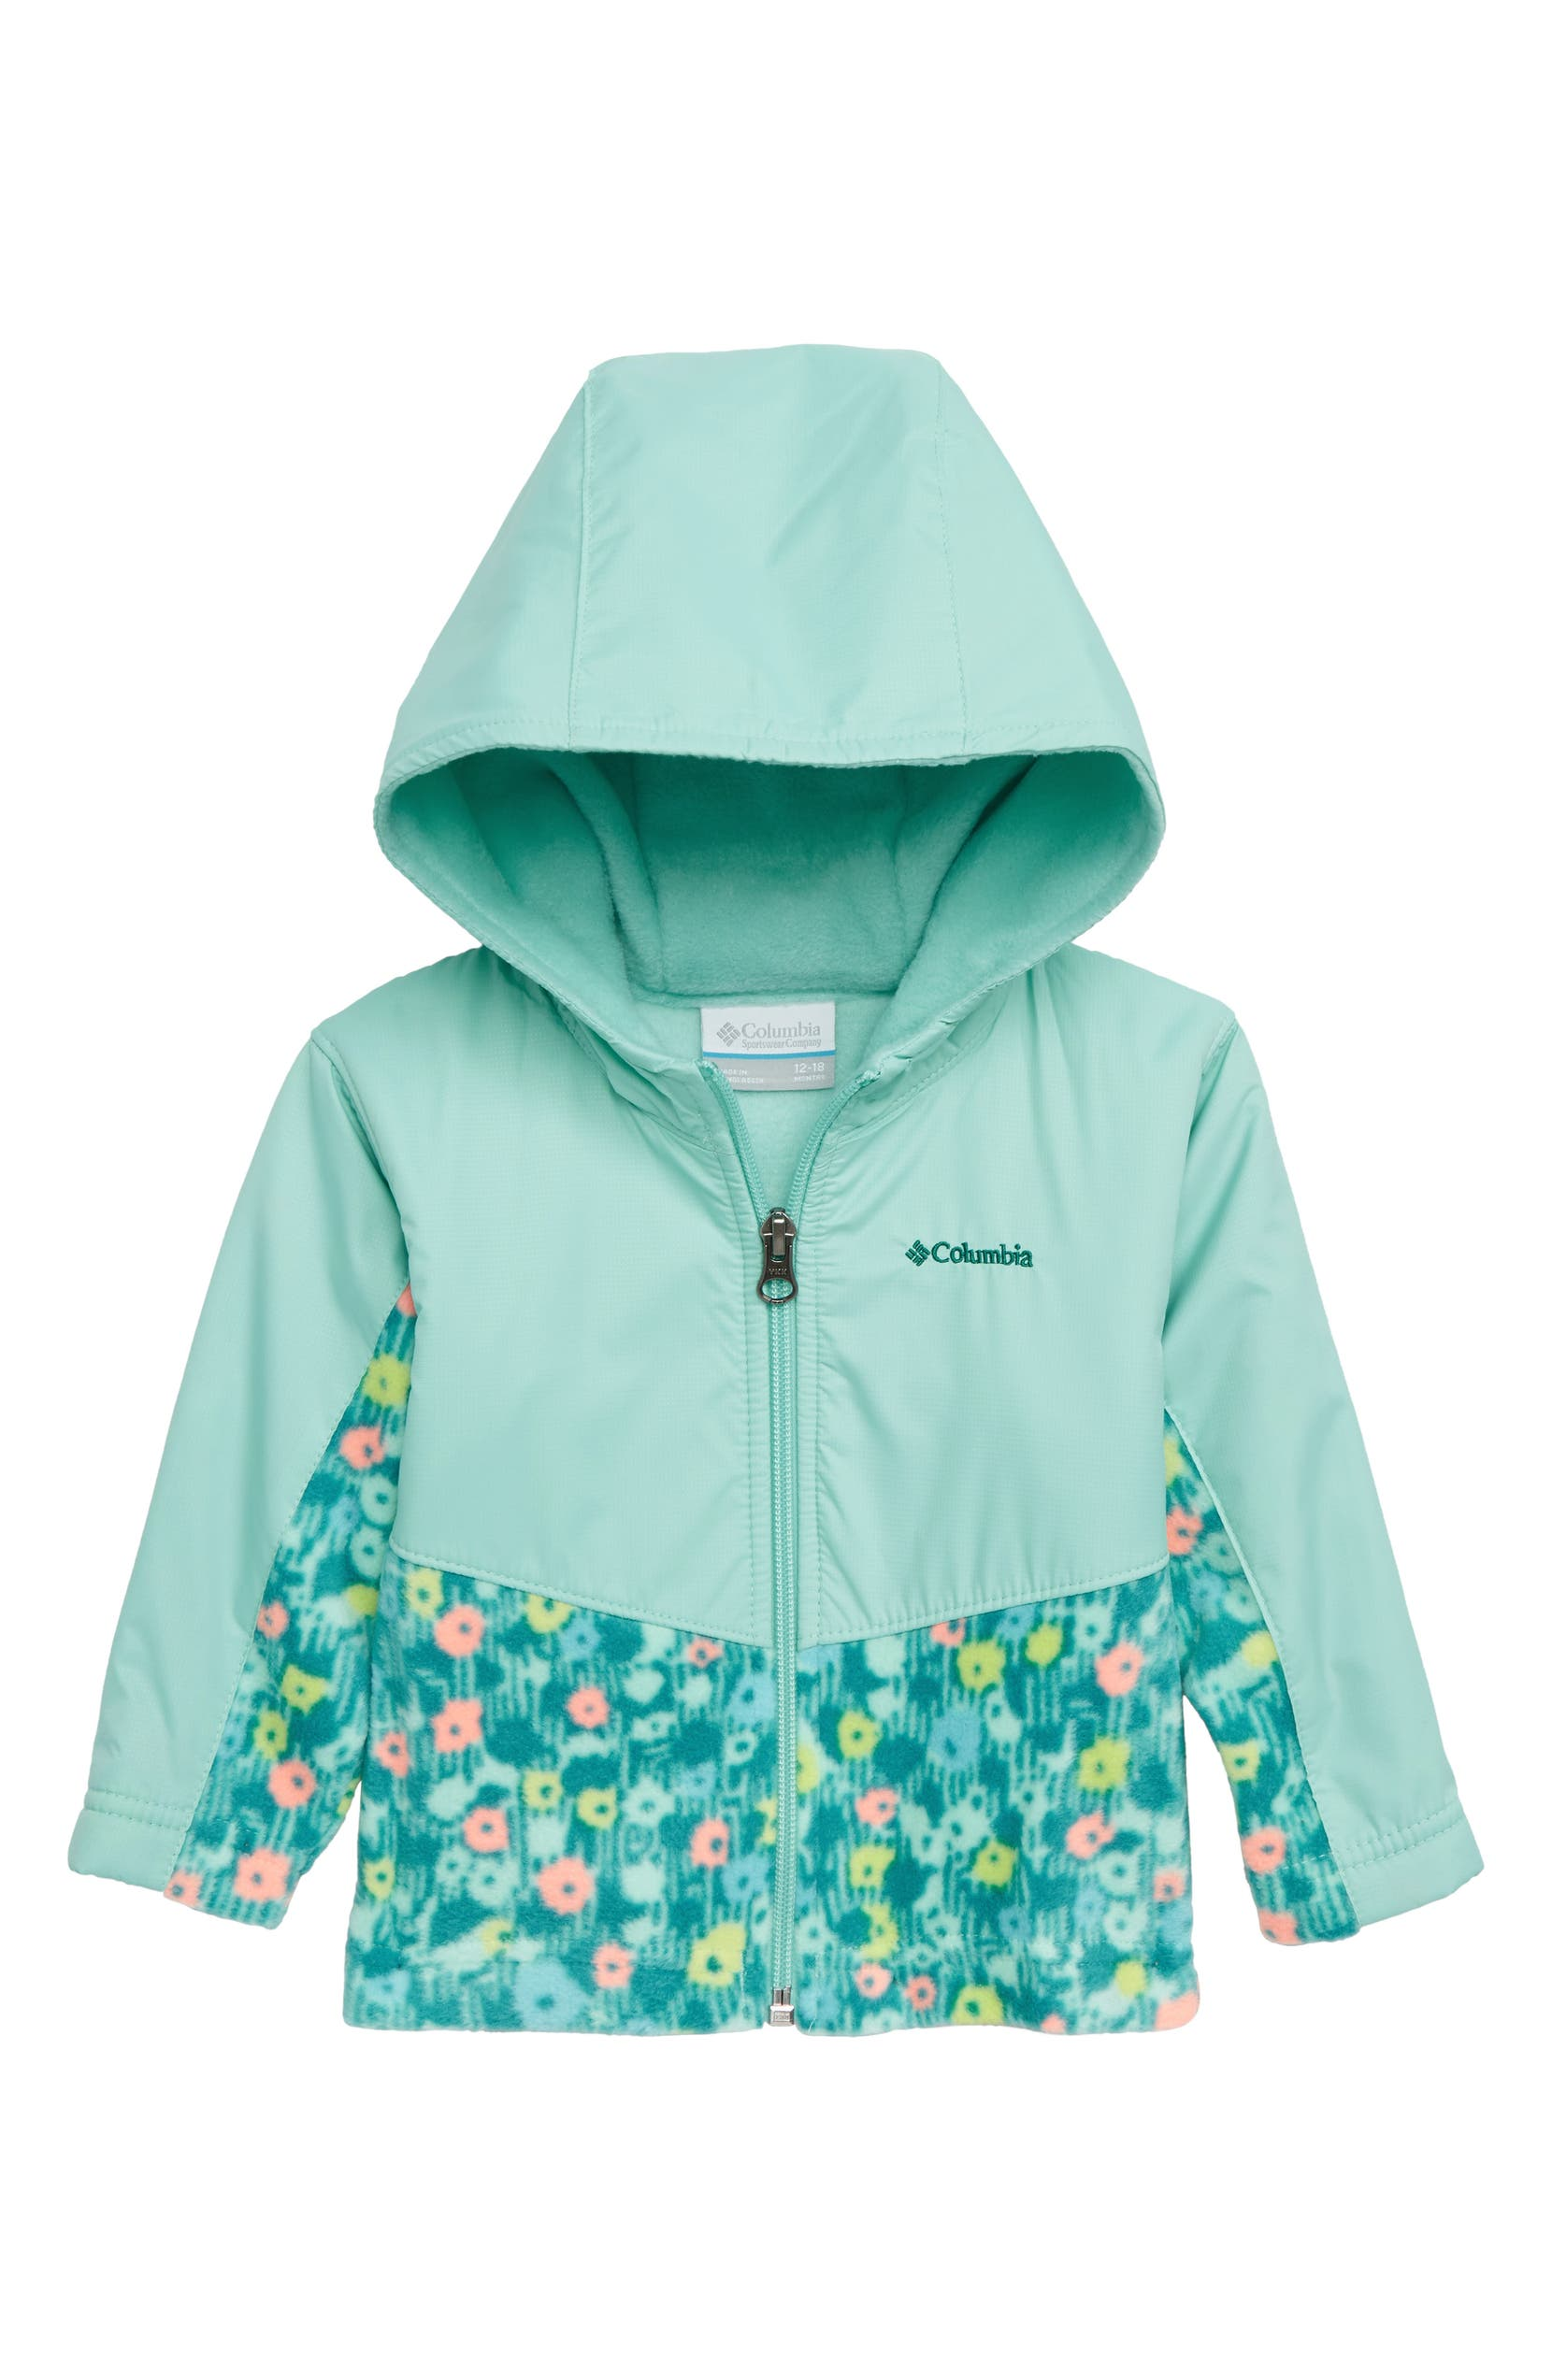 4810a07a2 Columbia Steens Mountain™ Overlay Water Resistant Hooded Jacket (Baby  Girls) | Nordstrom